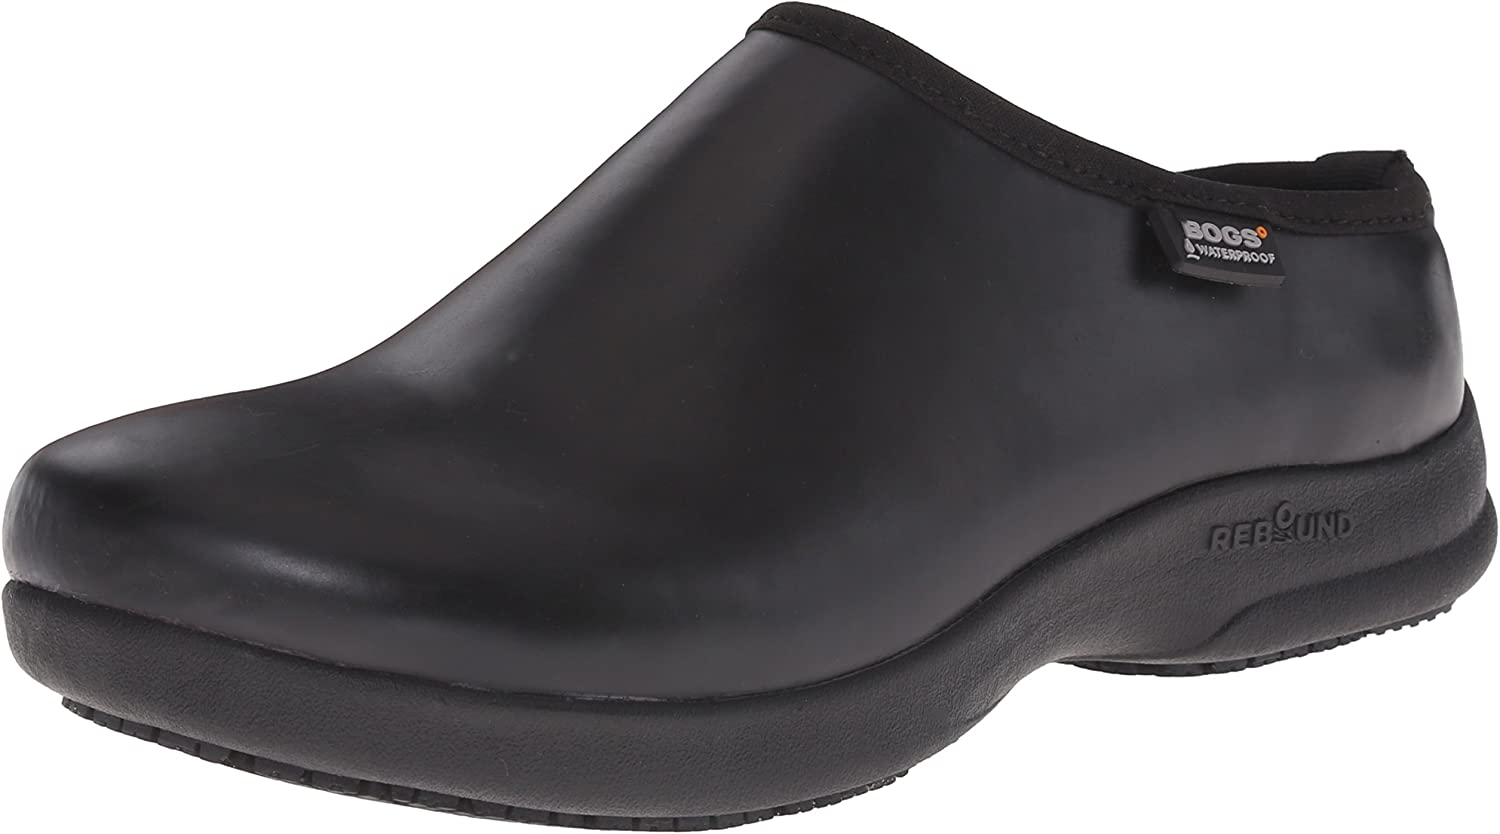 Bogs Women's Oliver Solid Slip Resistant Work shoes